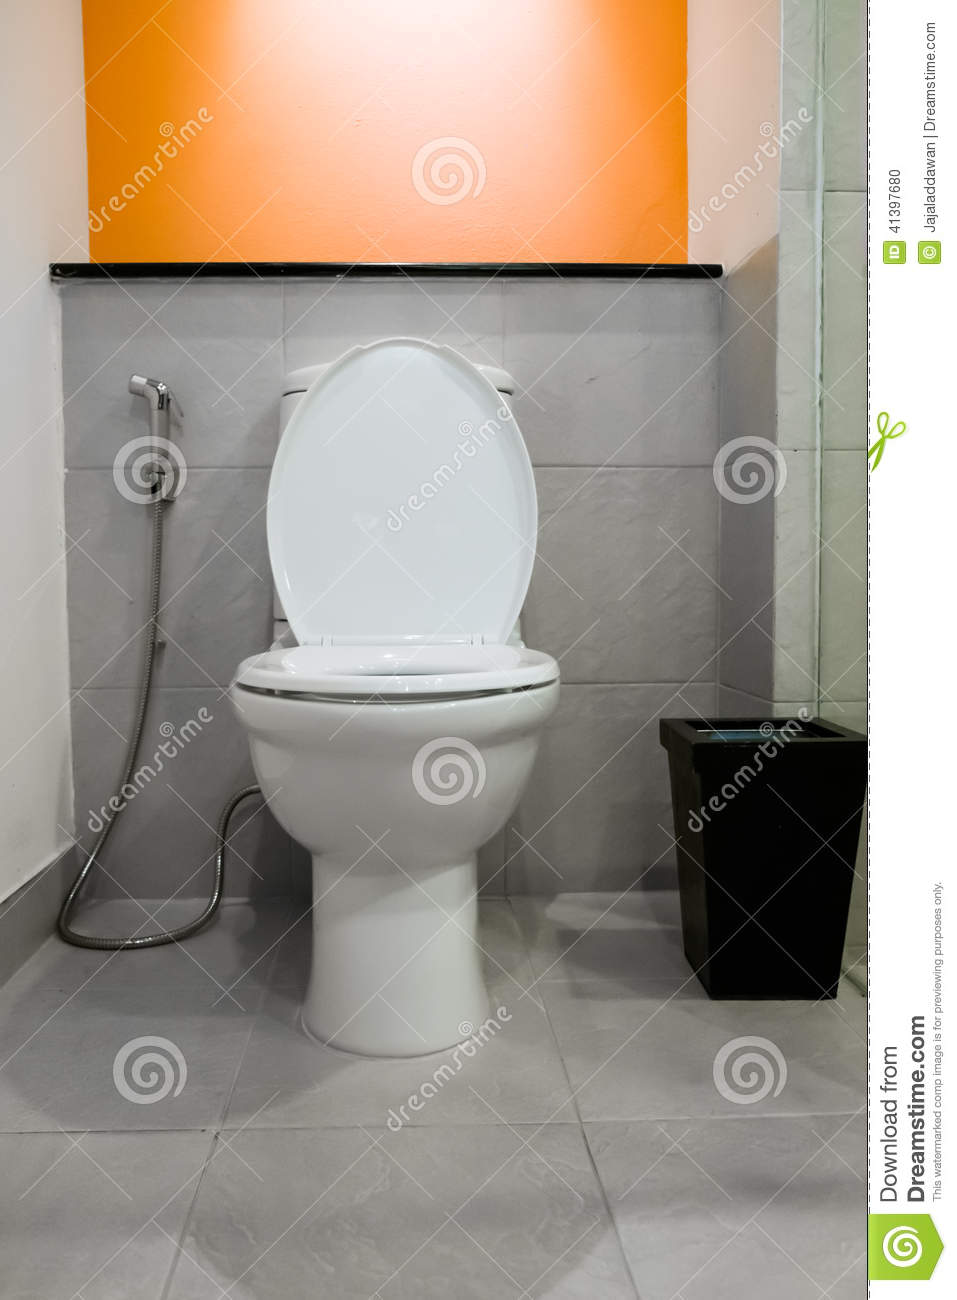 Modern Toilet Room Stock Photo Image Of Accessories